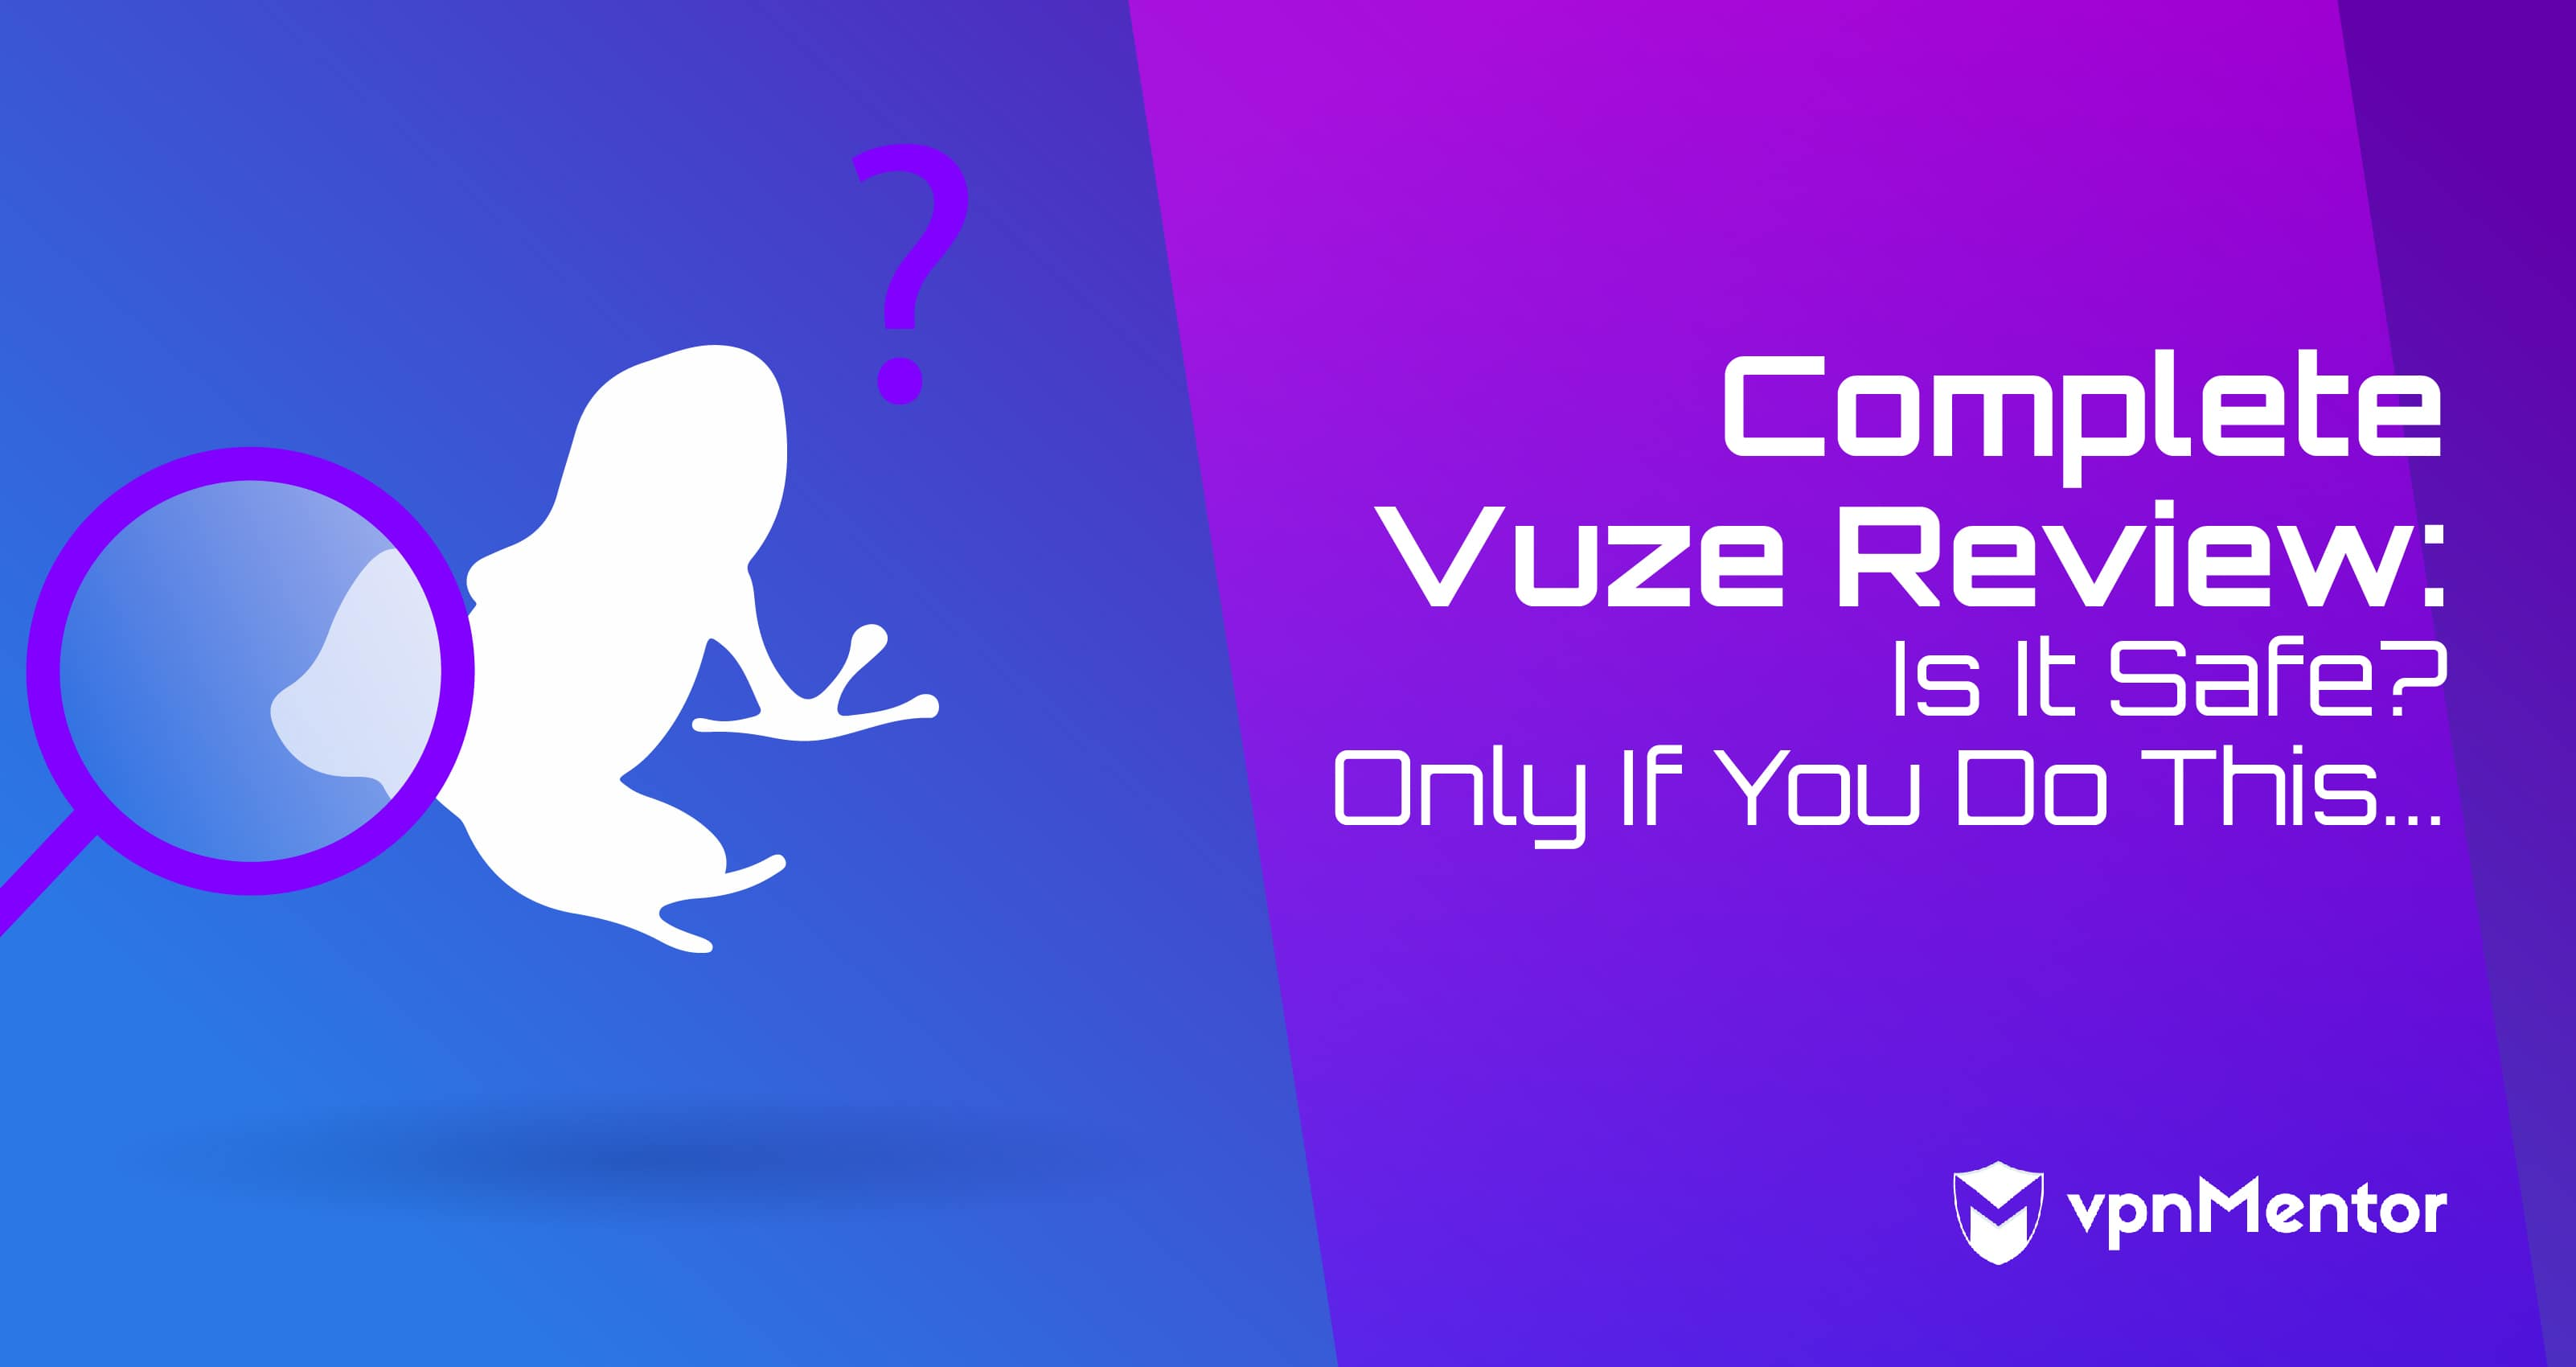 Complete Vuze Review